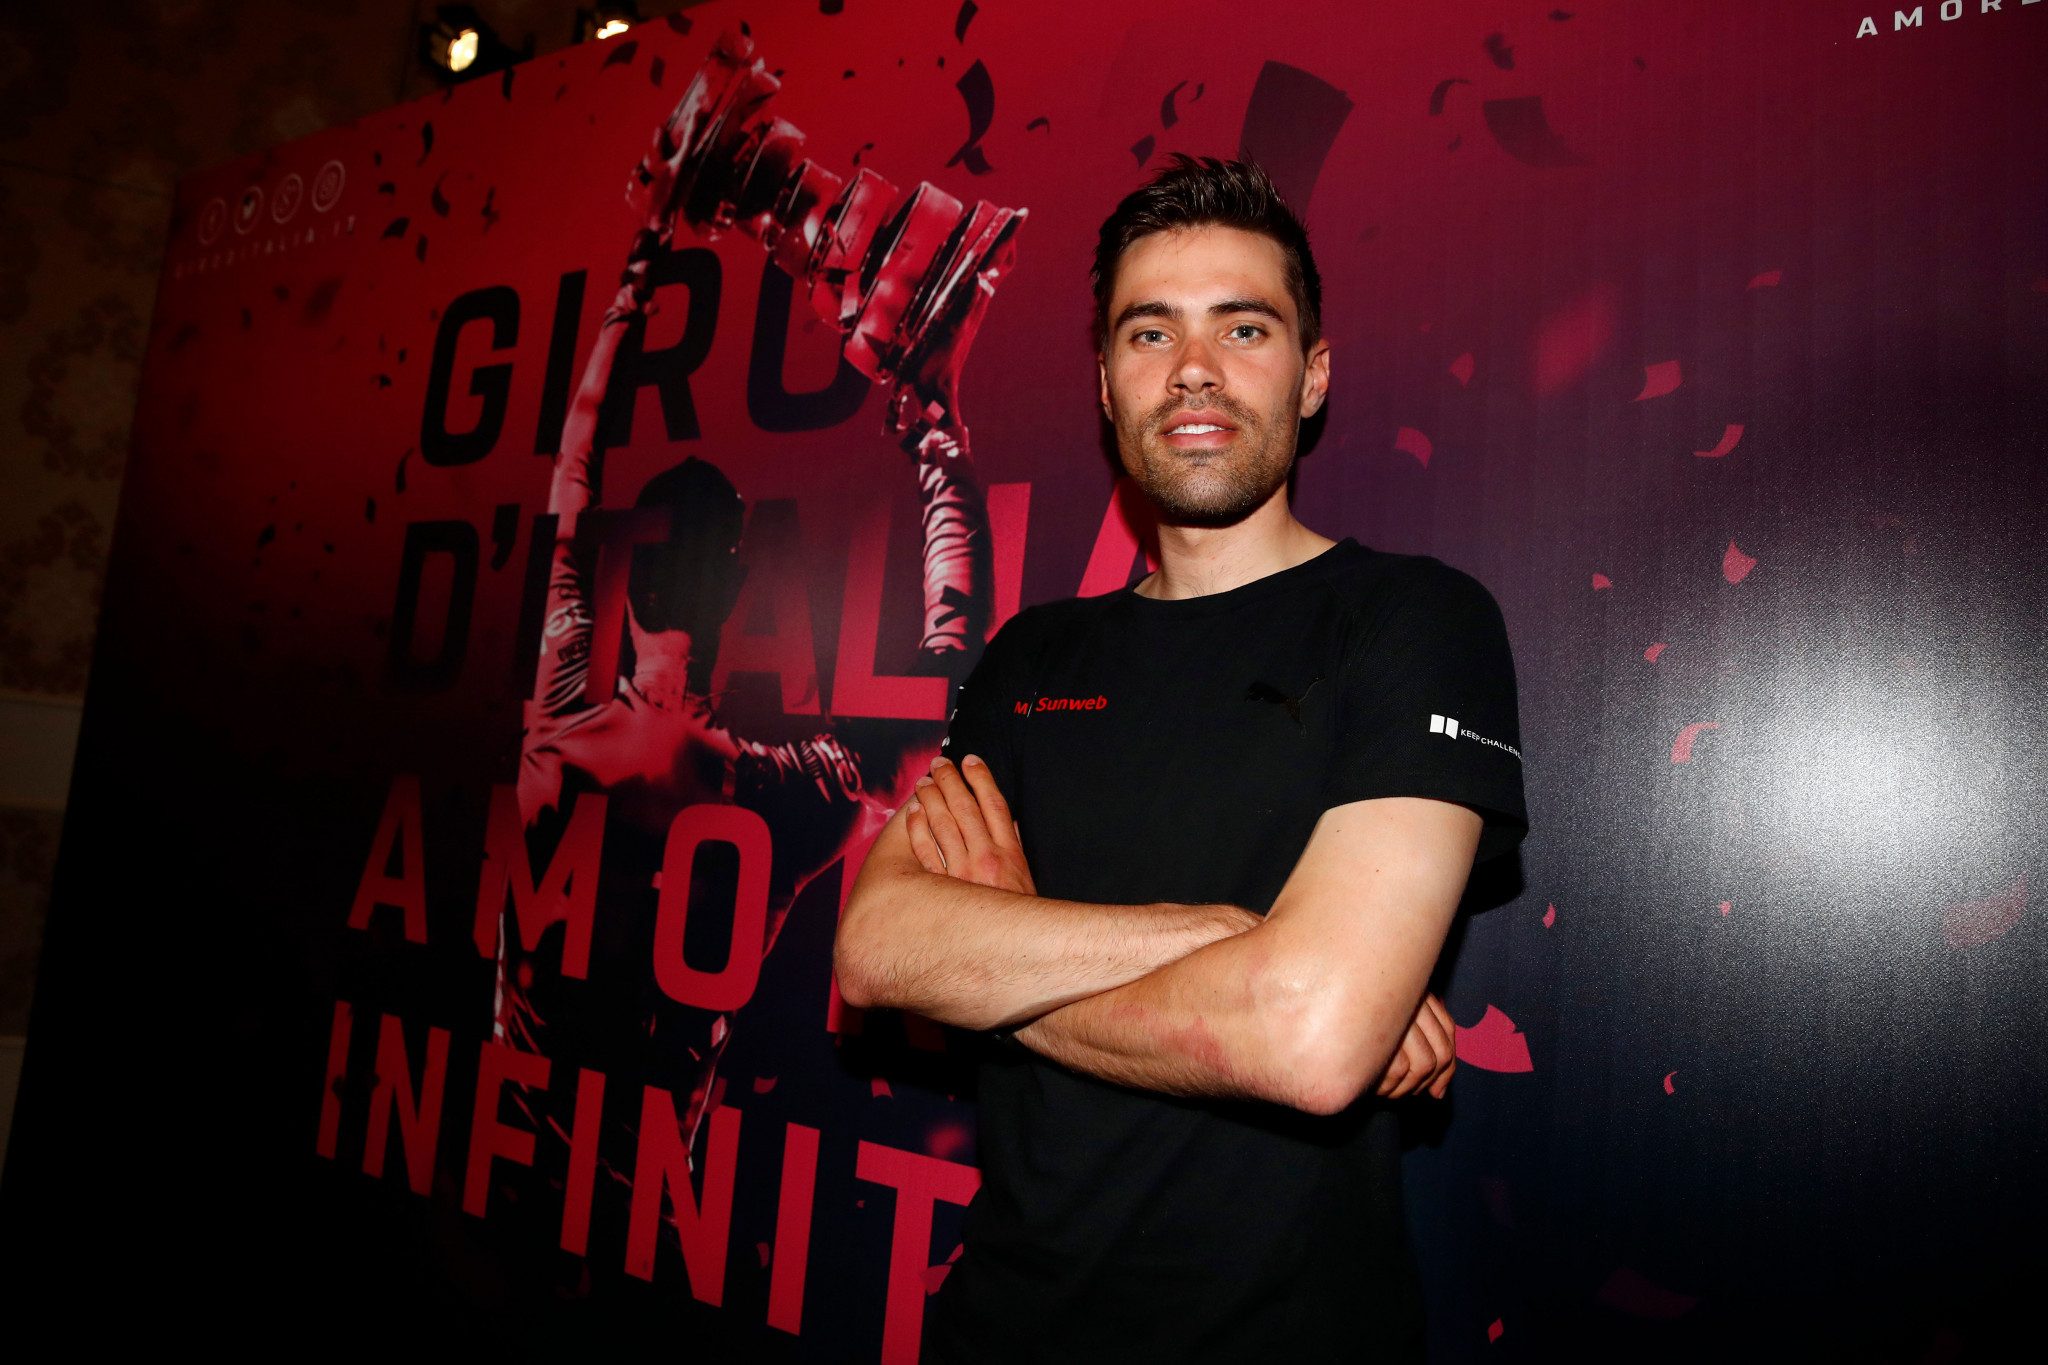 Dumoulin has no issues with Froome at Giro